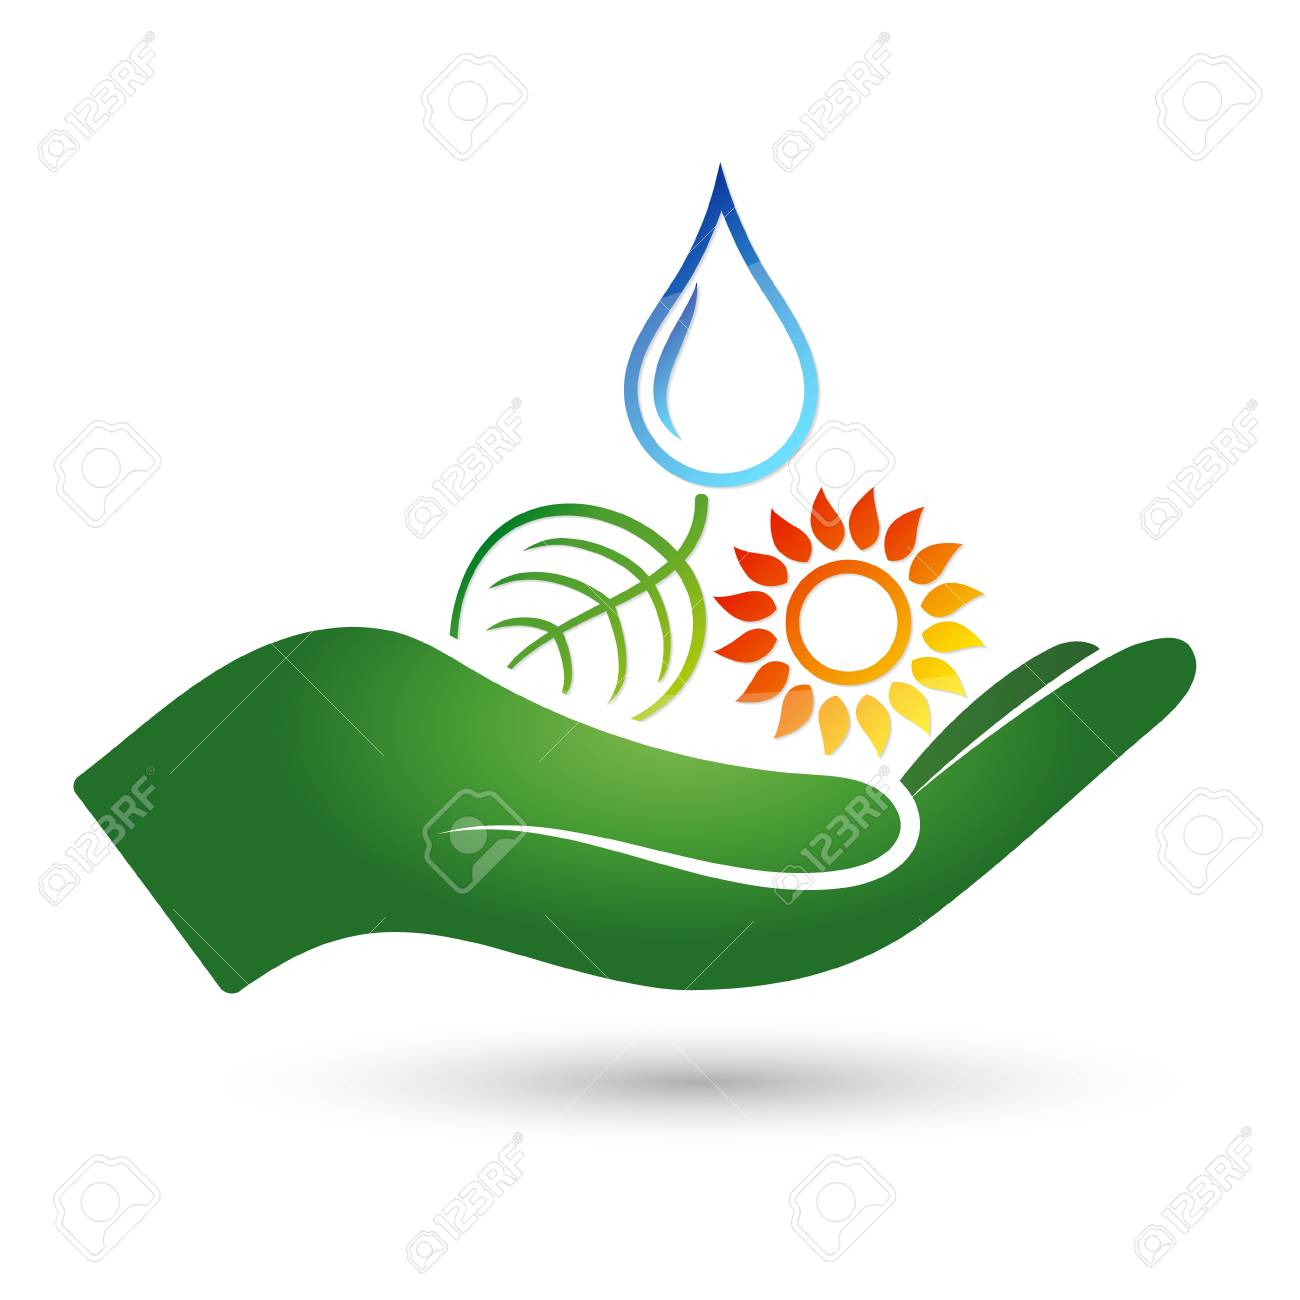 Symbols Of Alternative Energy Sources In The Hand Symbol Royalty